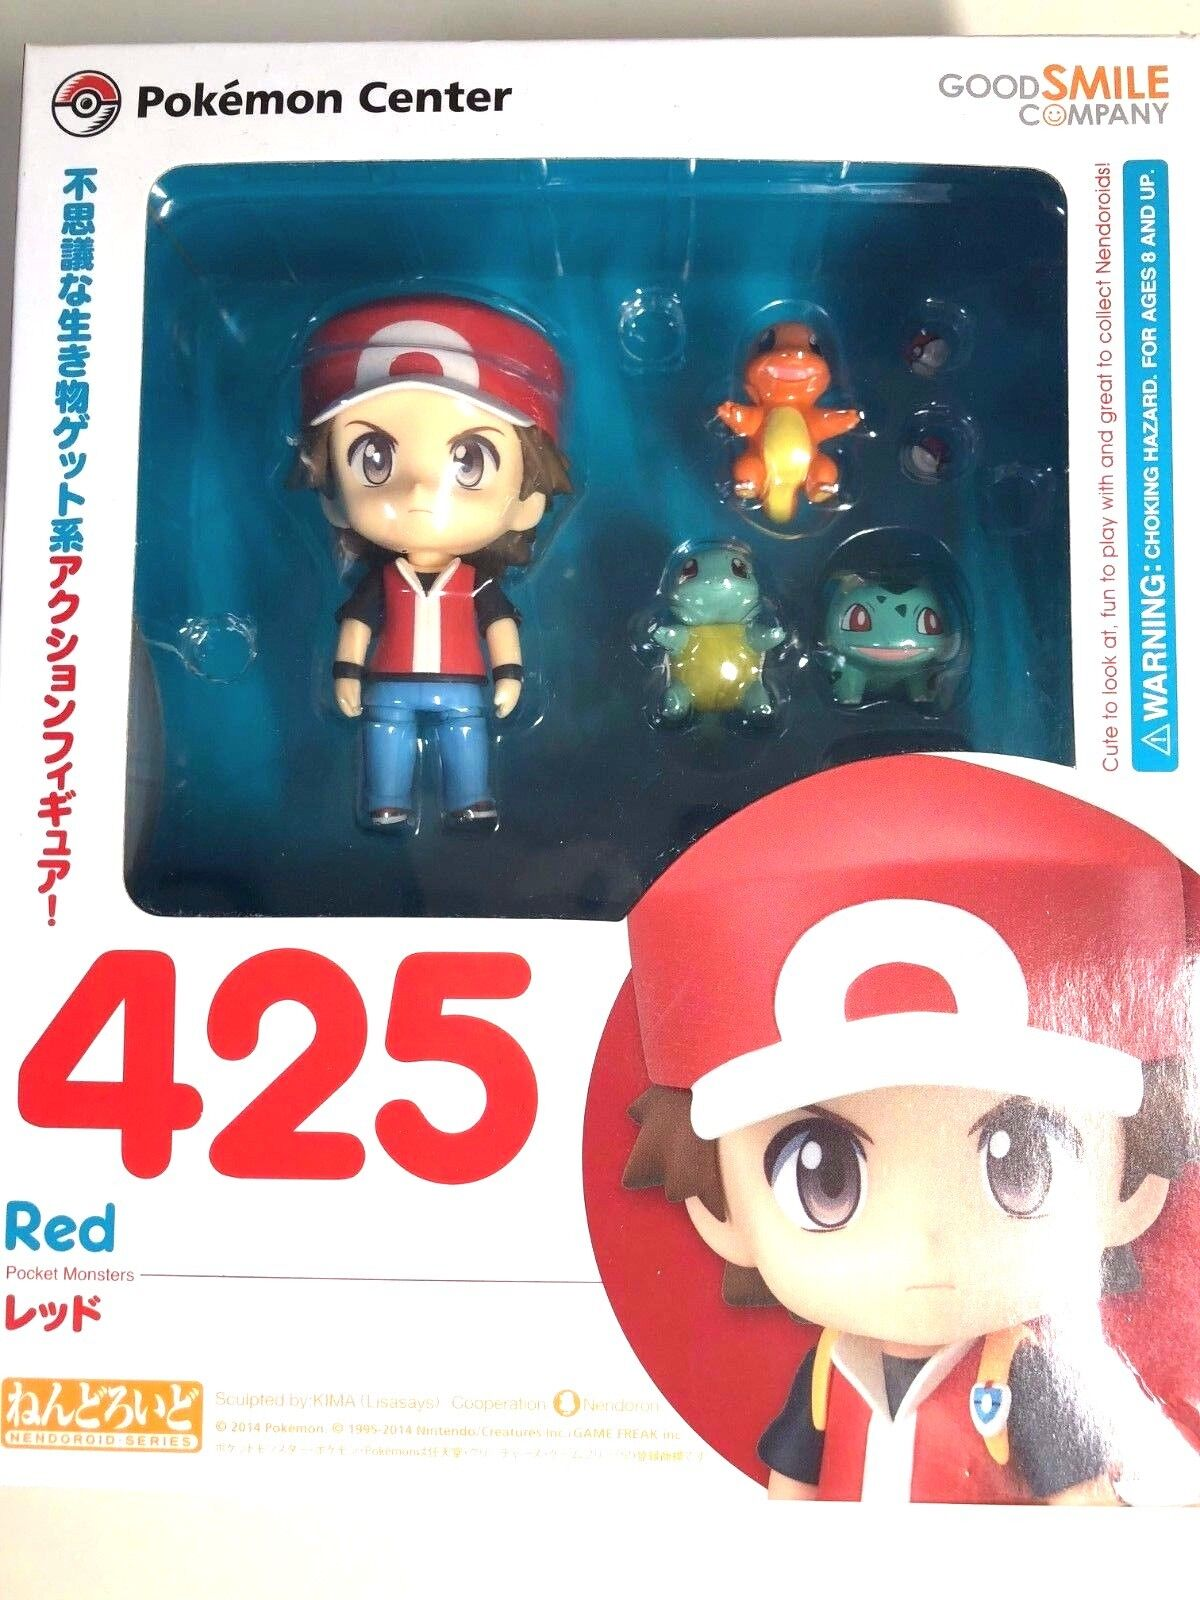 Free Shipping from Japan Authentic Nendgoldid Pokemon Red Good Smile Company